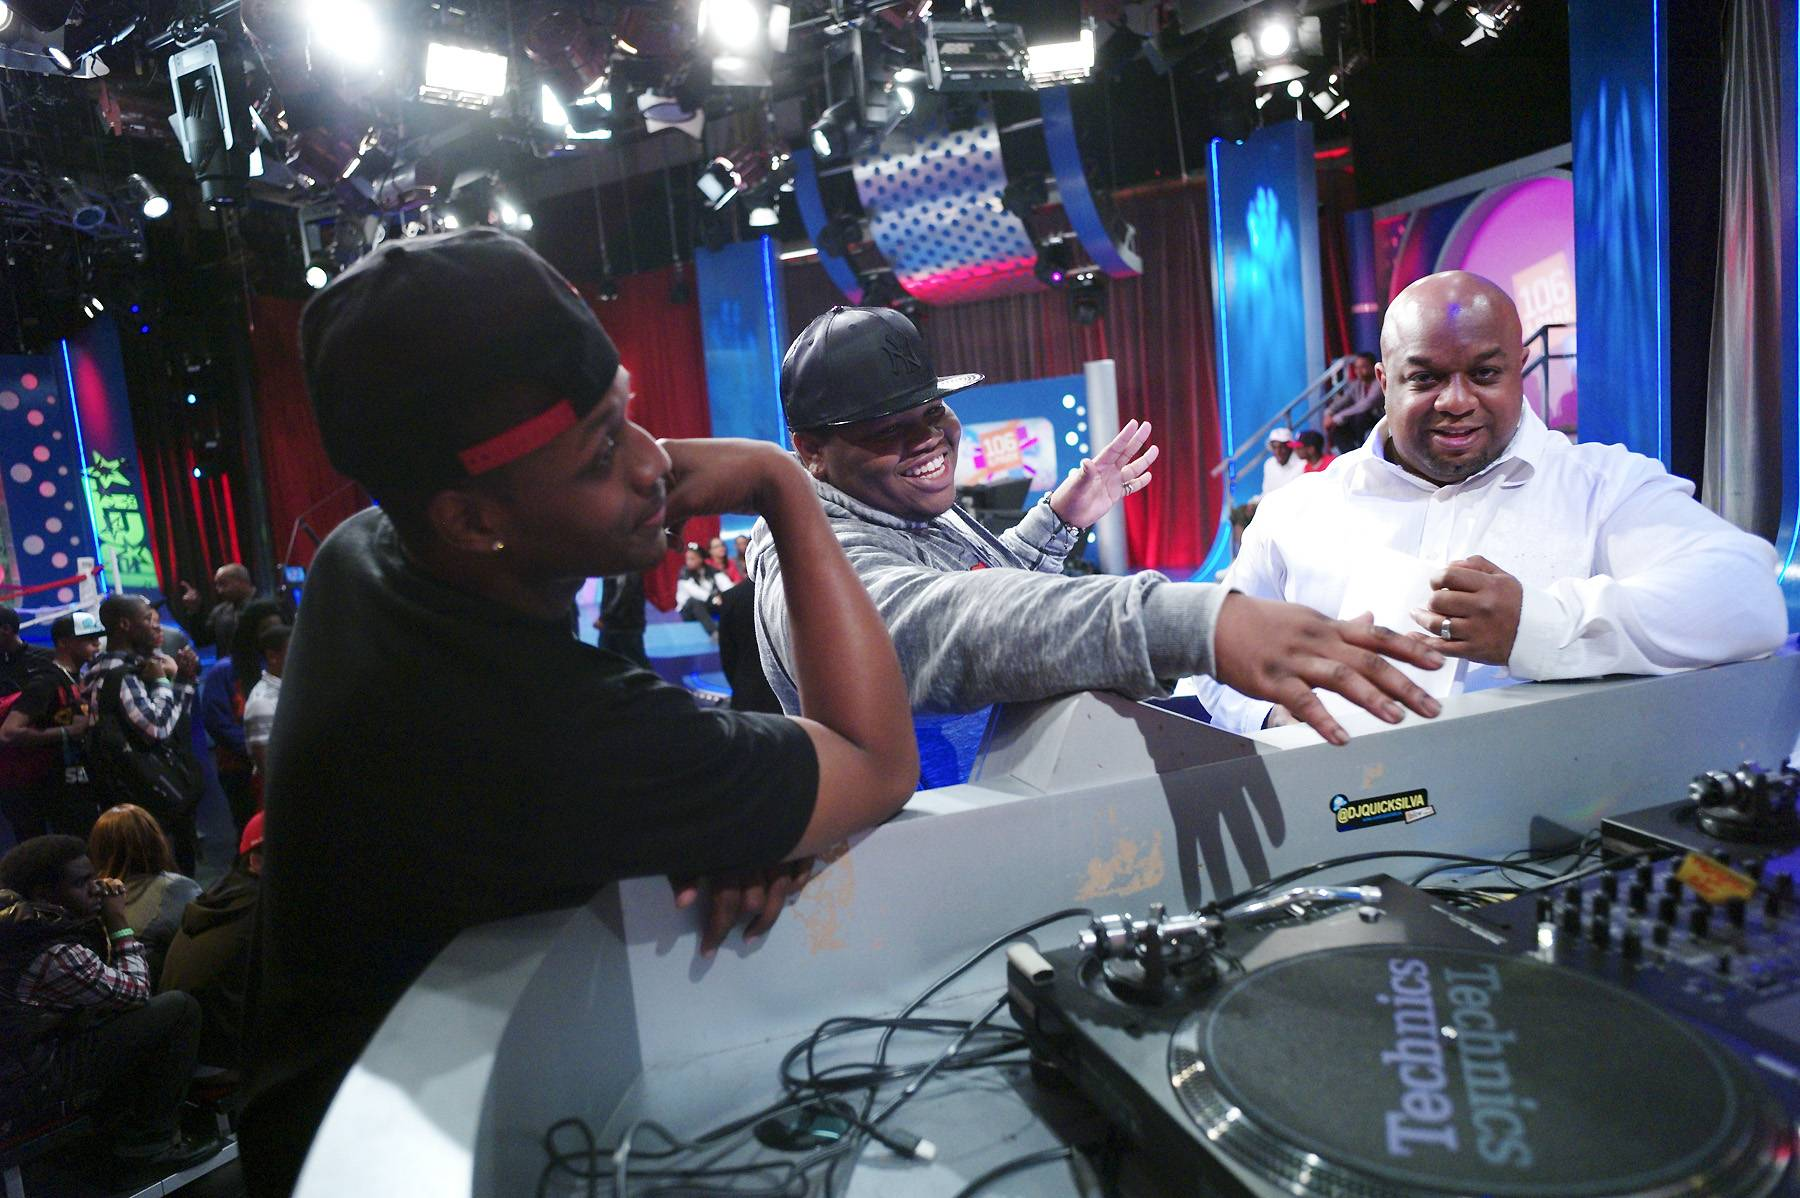 Get Ready - Before their battle, Syahboy and Relly review show notes with segment producer Pat Charles at 106 & Park, April 6, 2012. (photo: John Ricard / BET)